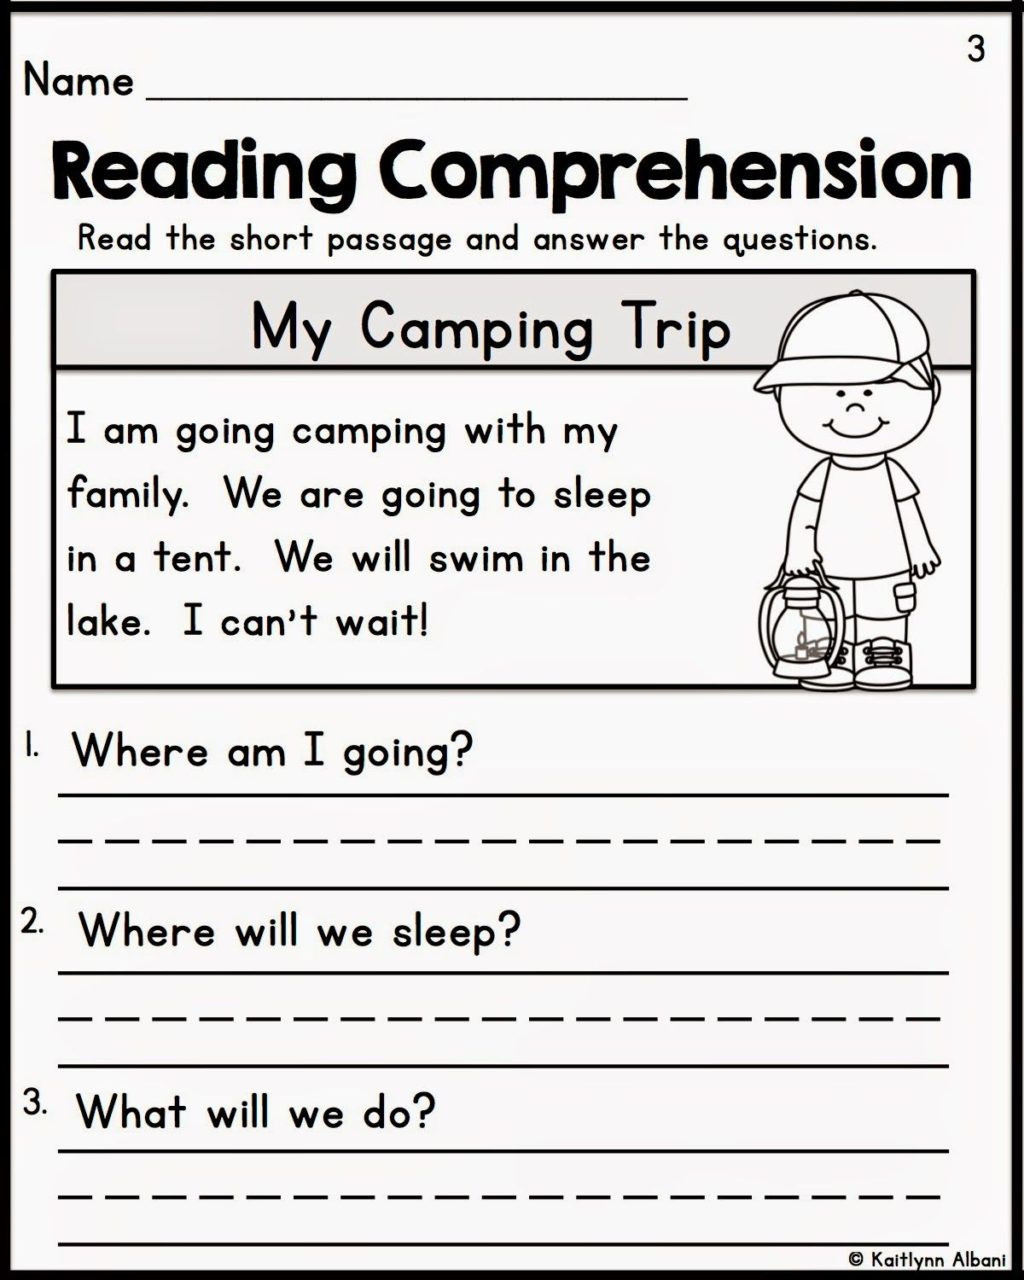 Kindergarten Reading Worksheets Free Worksheet Free Kindergarten Reading Worksheets Worksheet